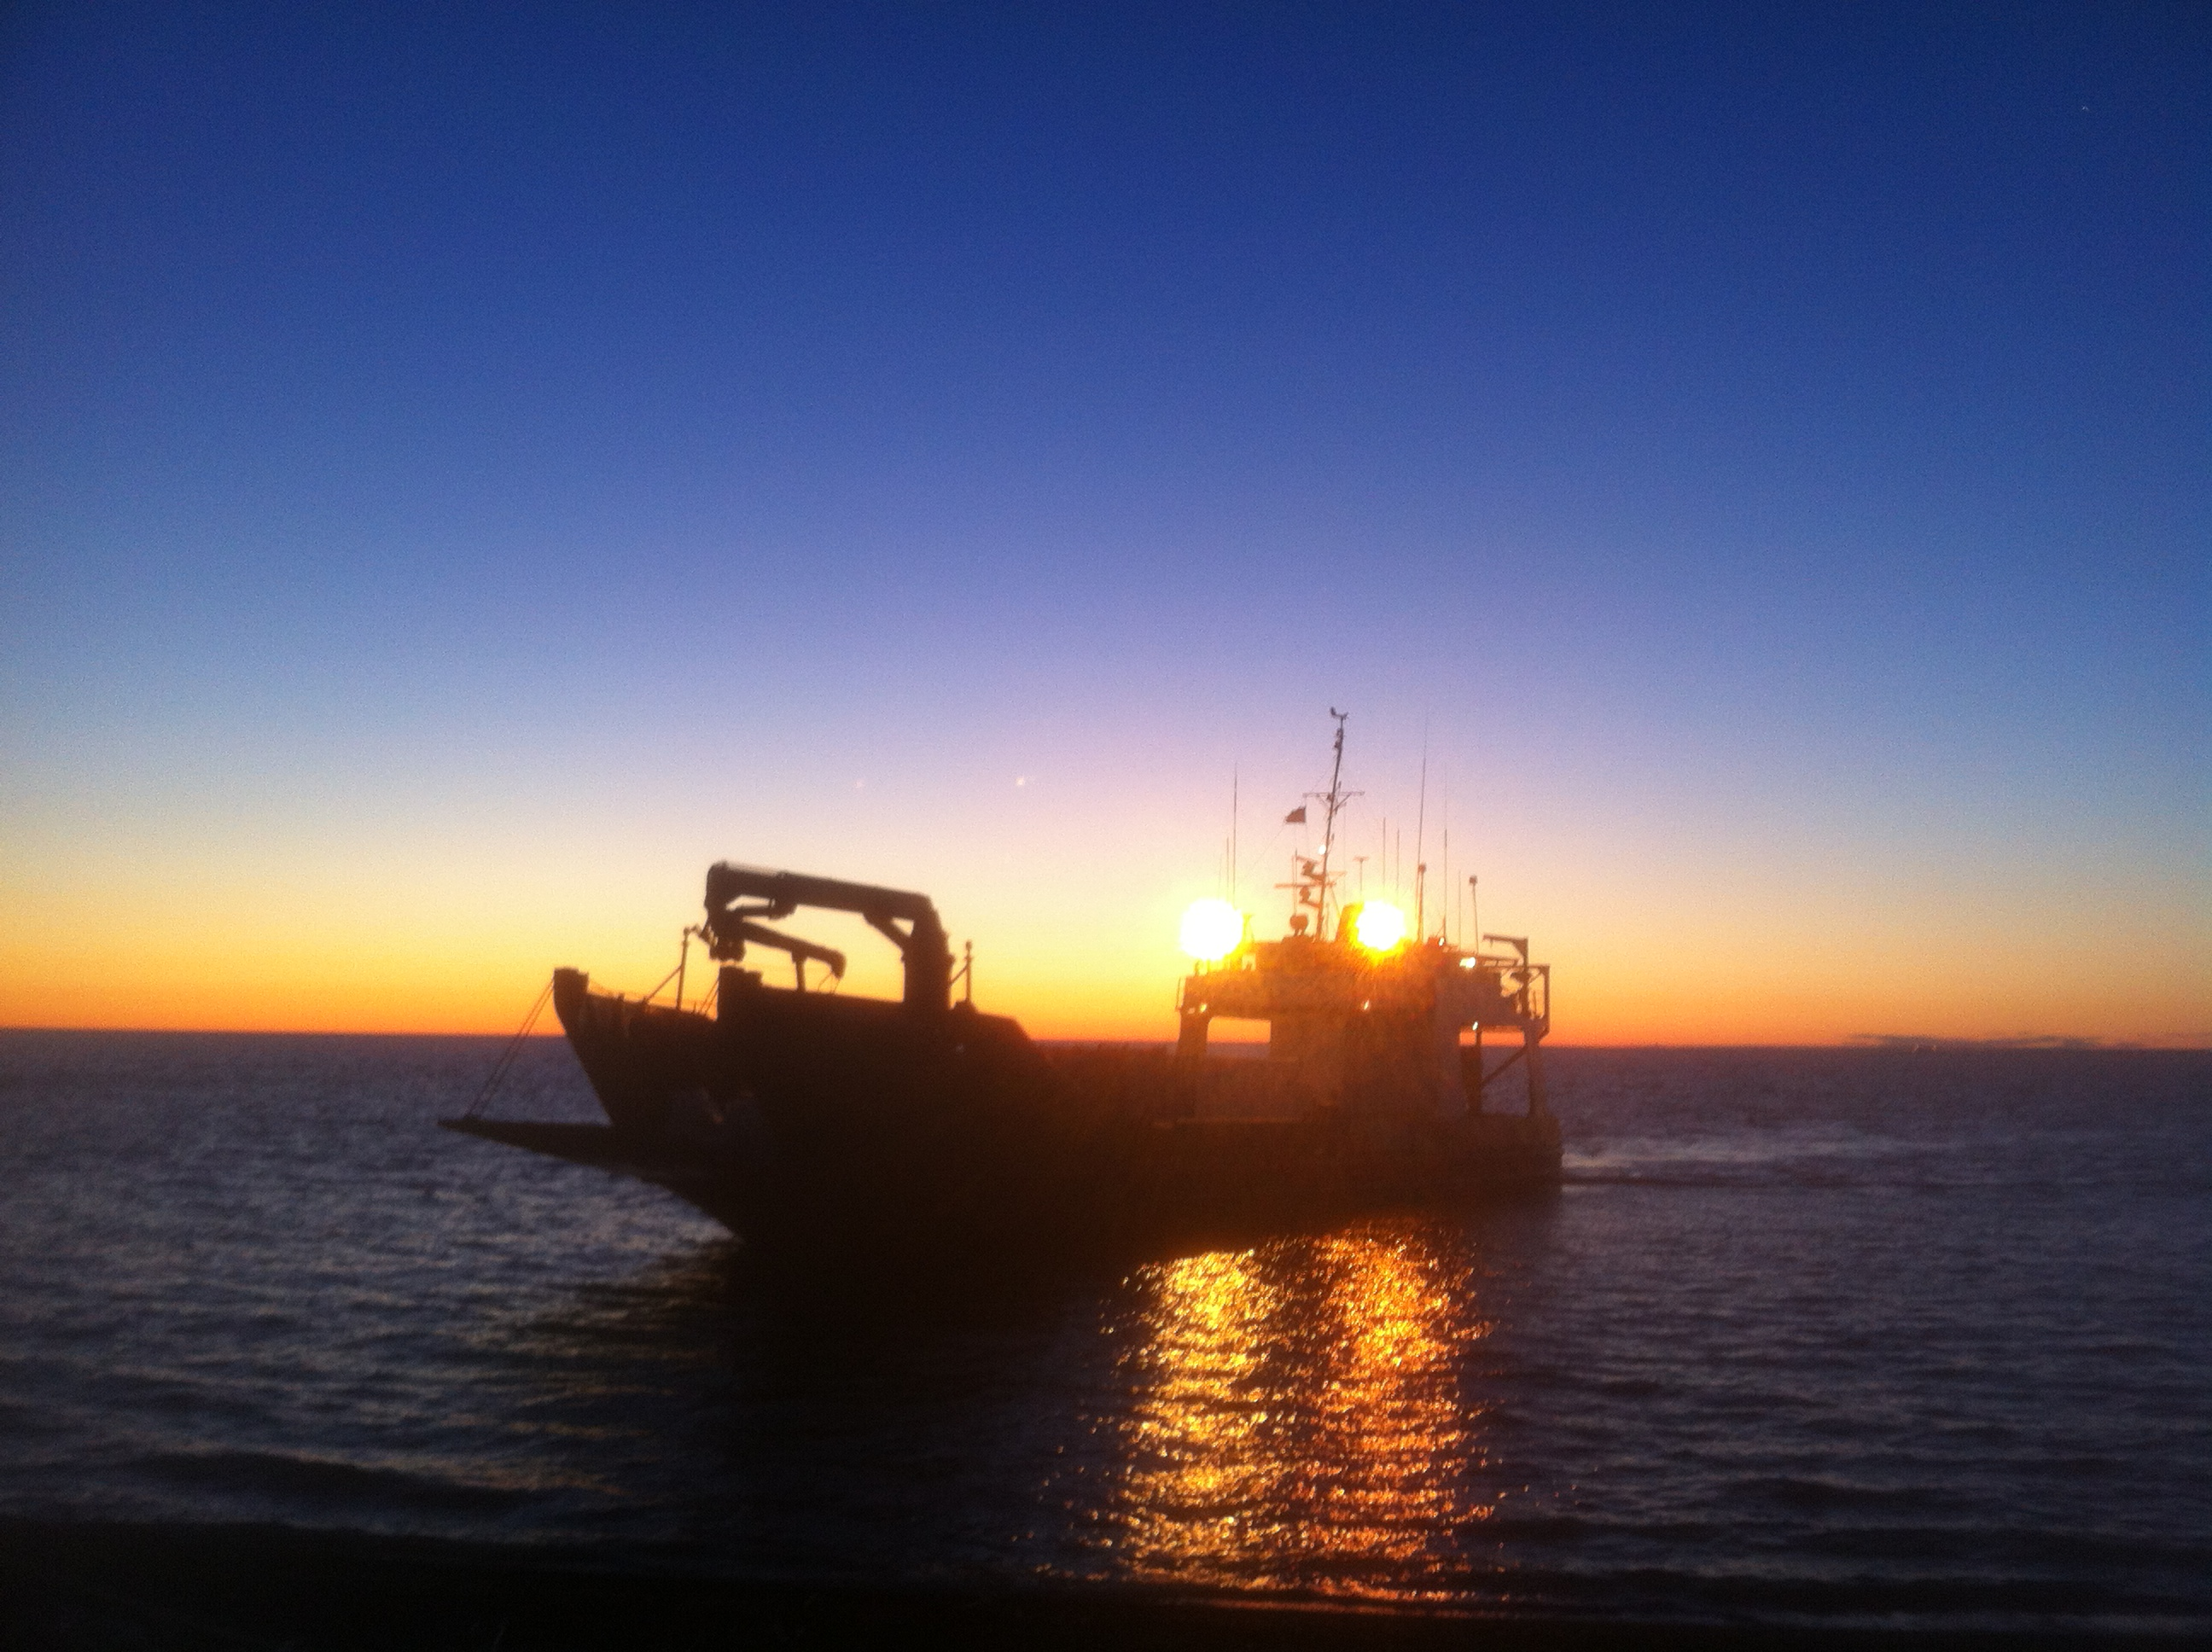 Landing Craft at Sunset